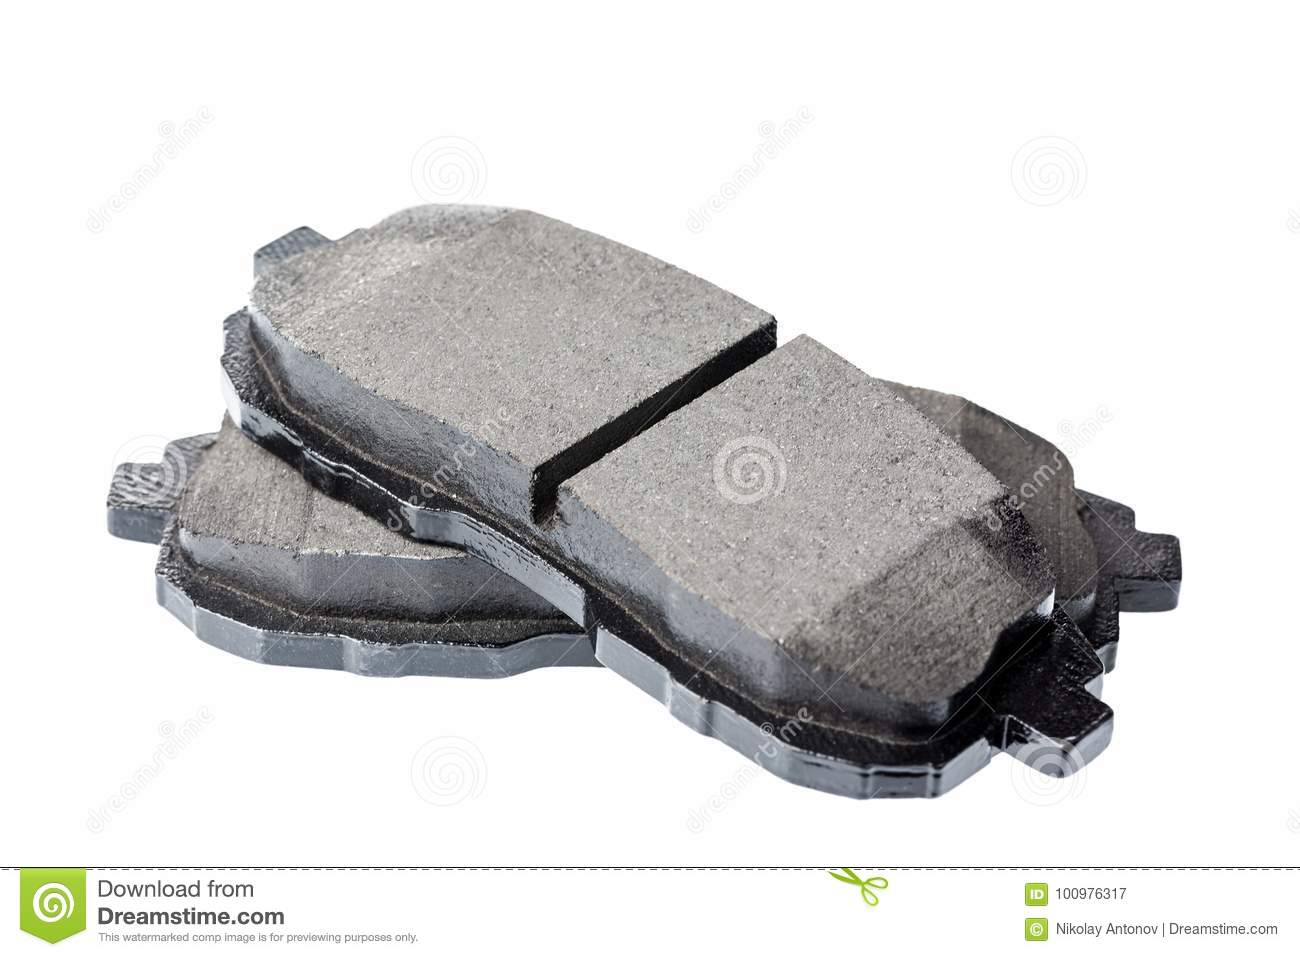 Set of brake pads, car spares isolated on white